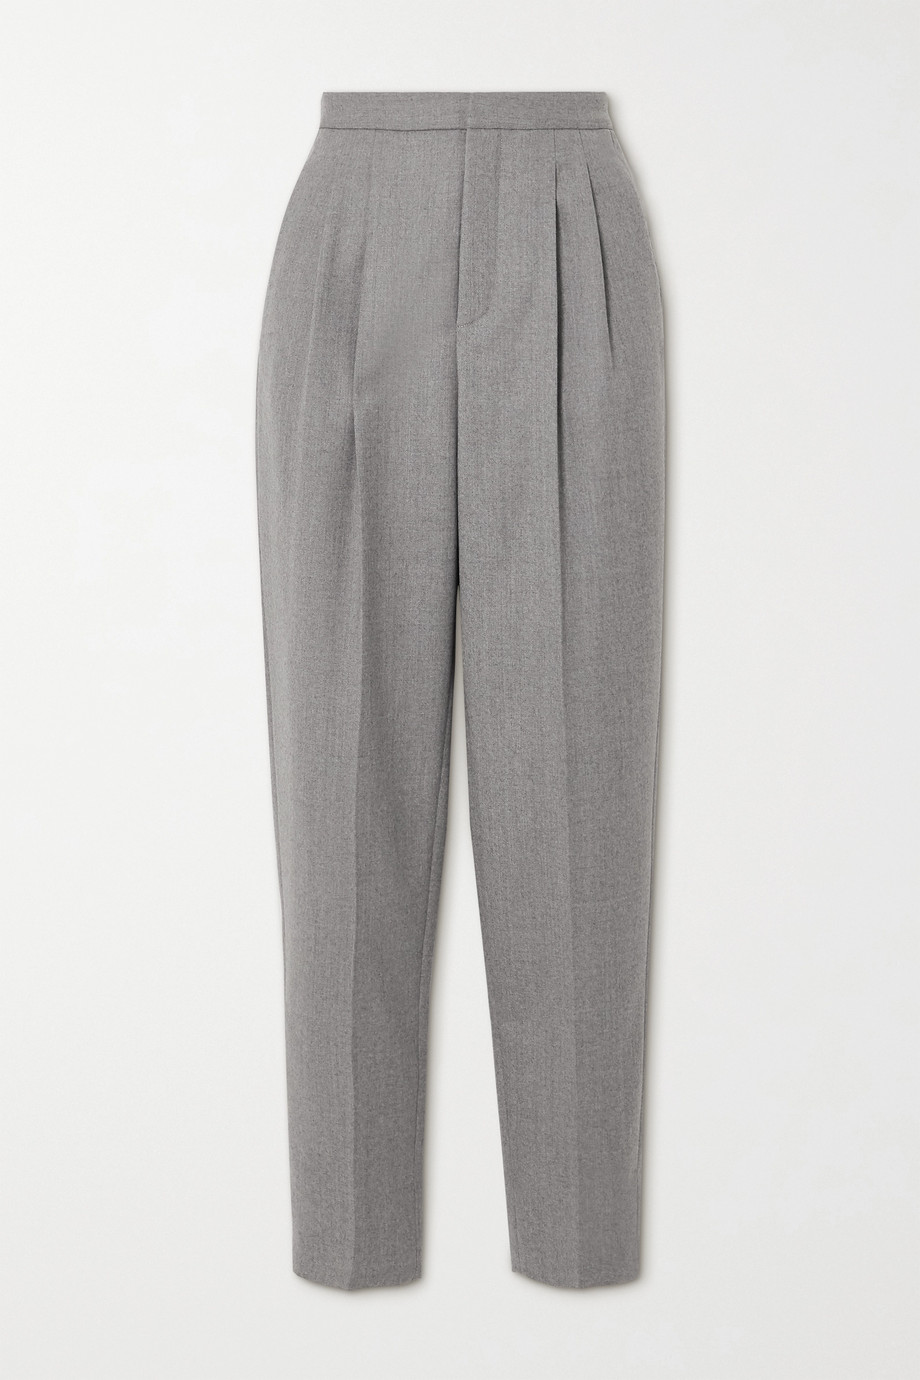 SAINT LAURENT Pleated wool-twill tapered pants